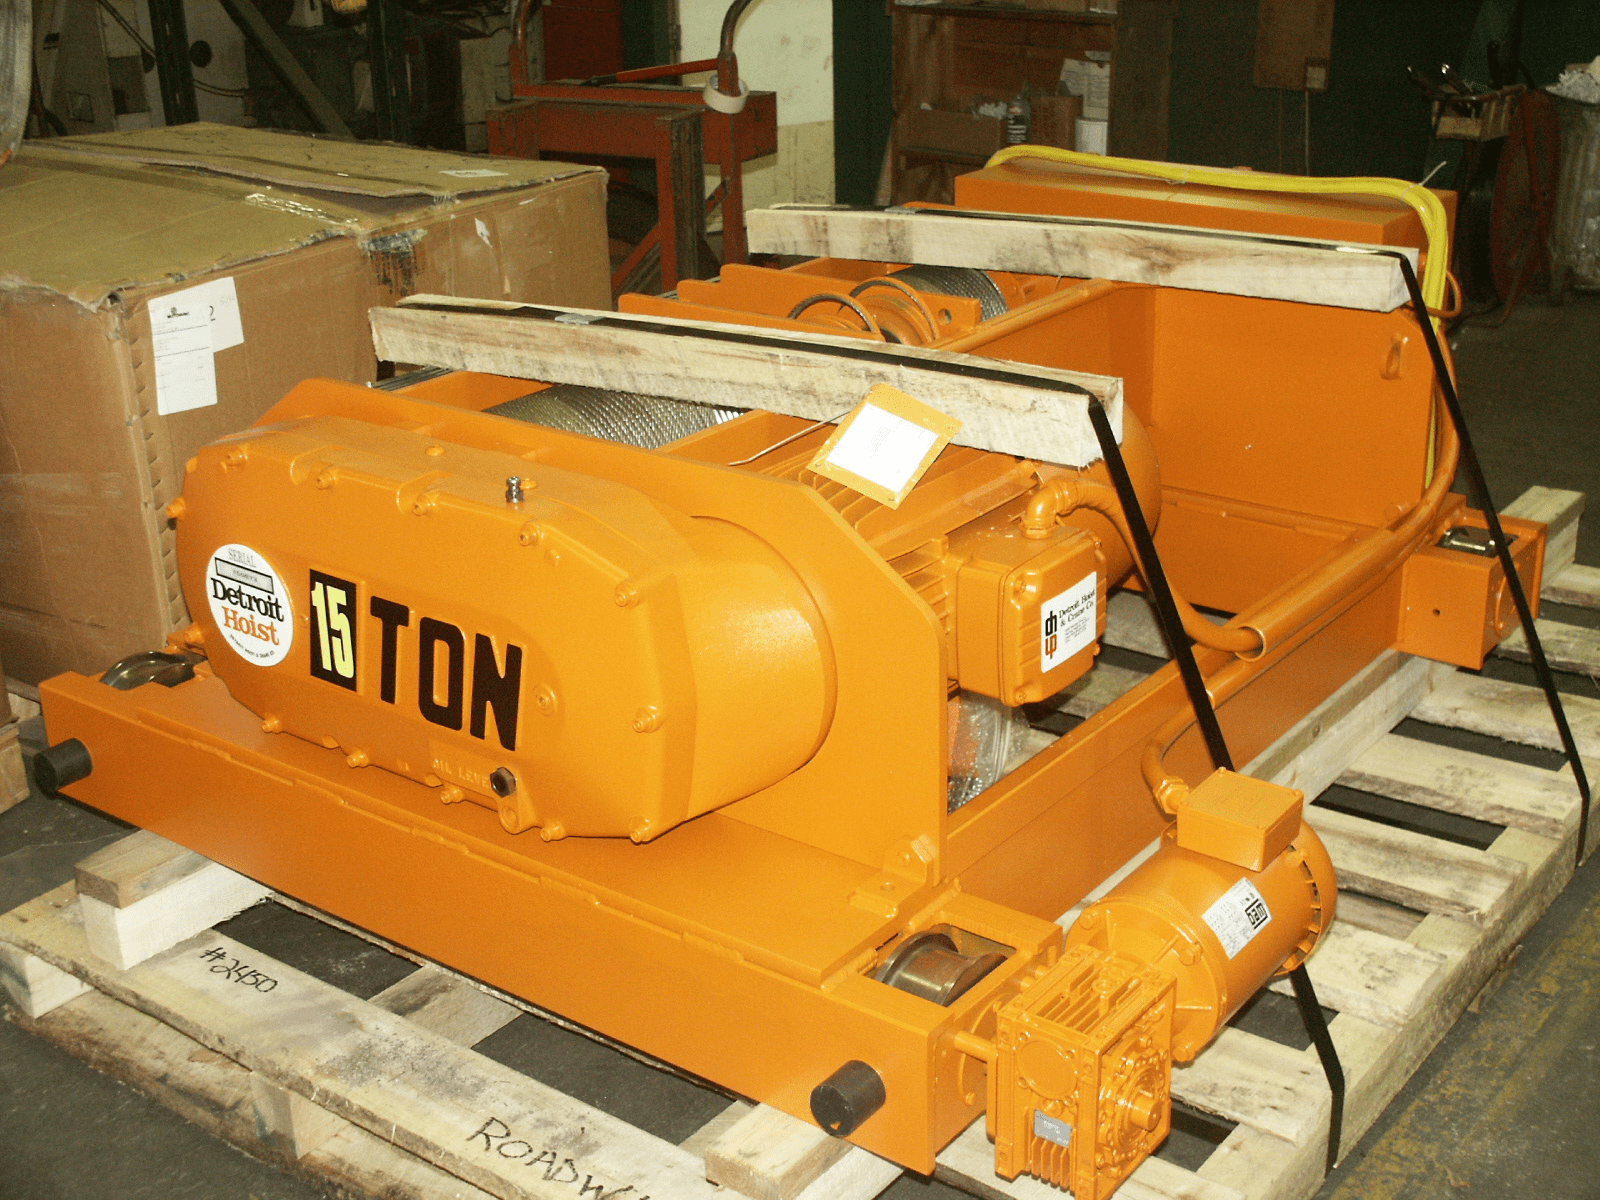 Detroit 20 Ton TRDG Electric Wire Rope Hoist, 10/3 FPM